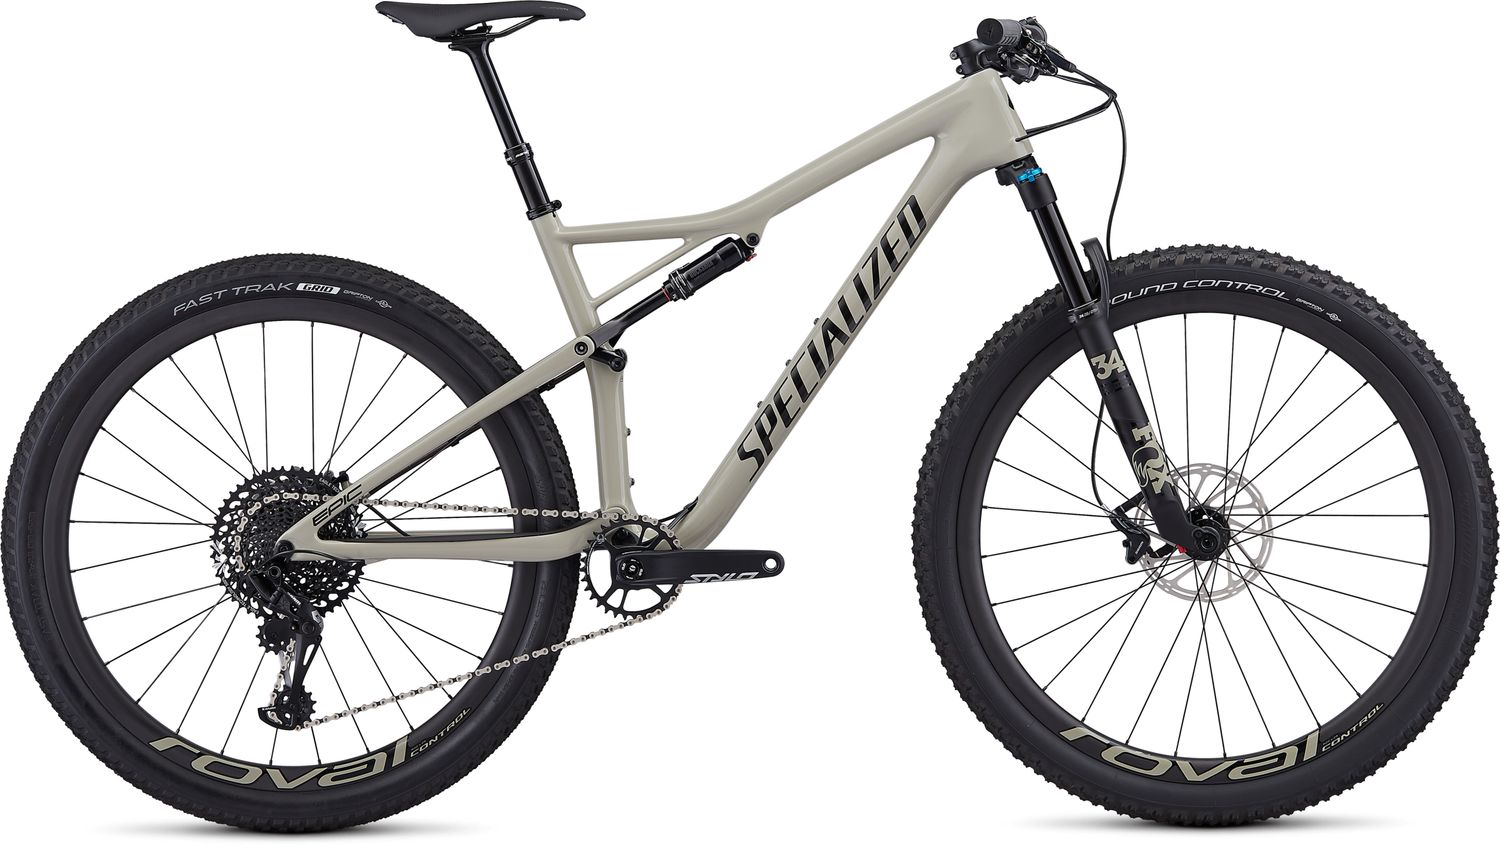 Specialized 2019 Epic Expert Evo